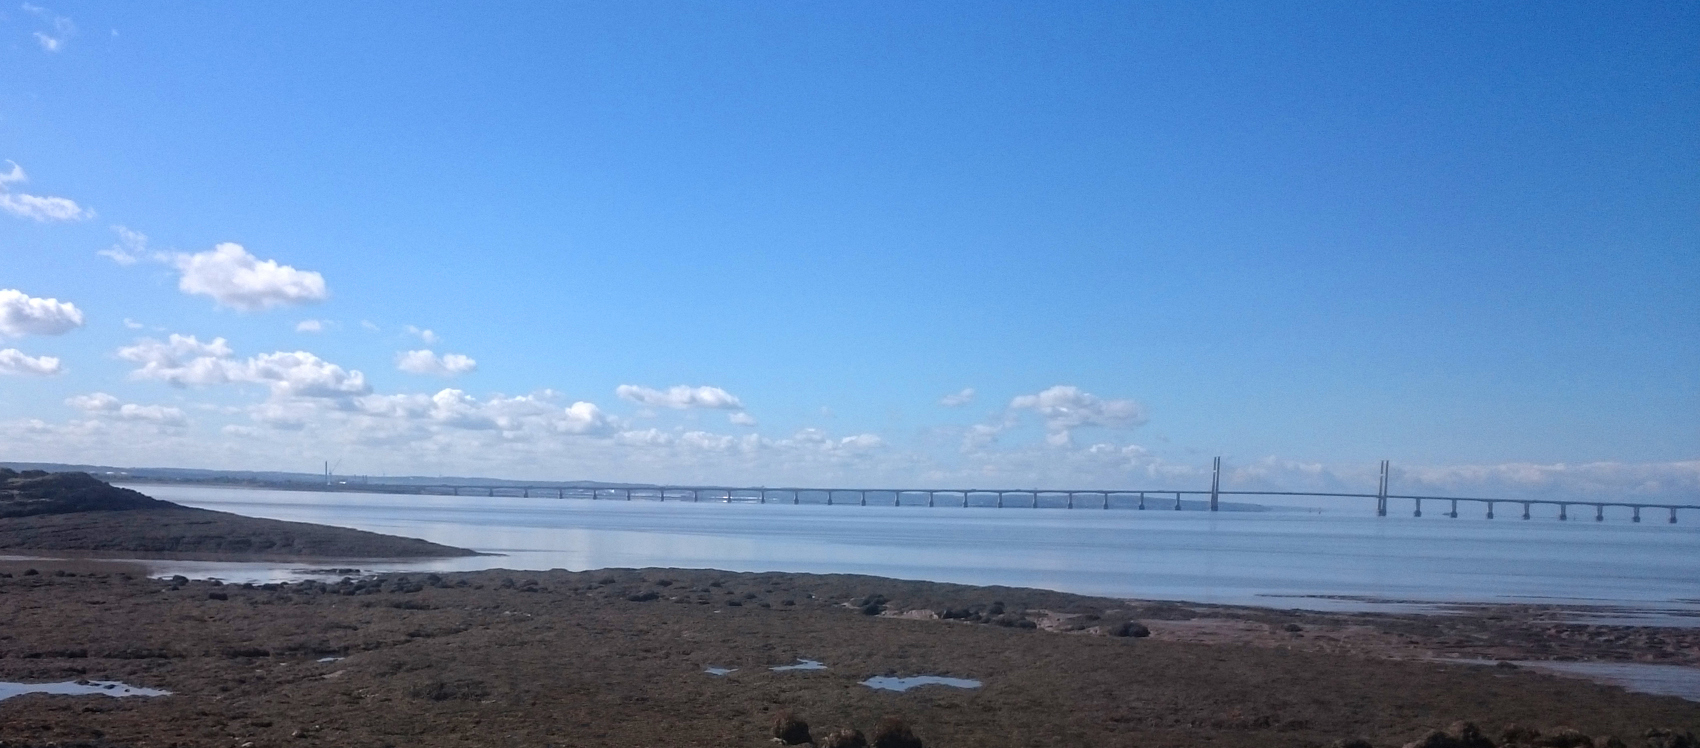 New Threat to Severn Estuary